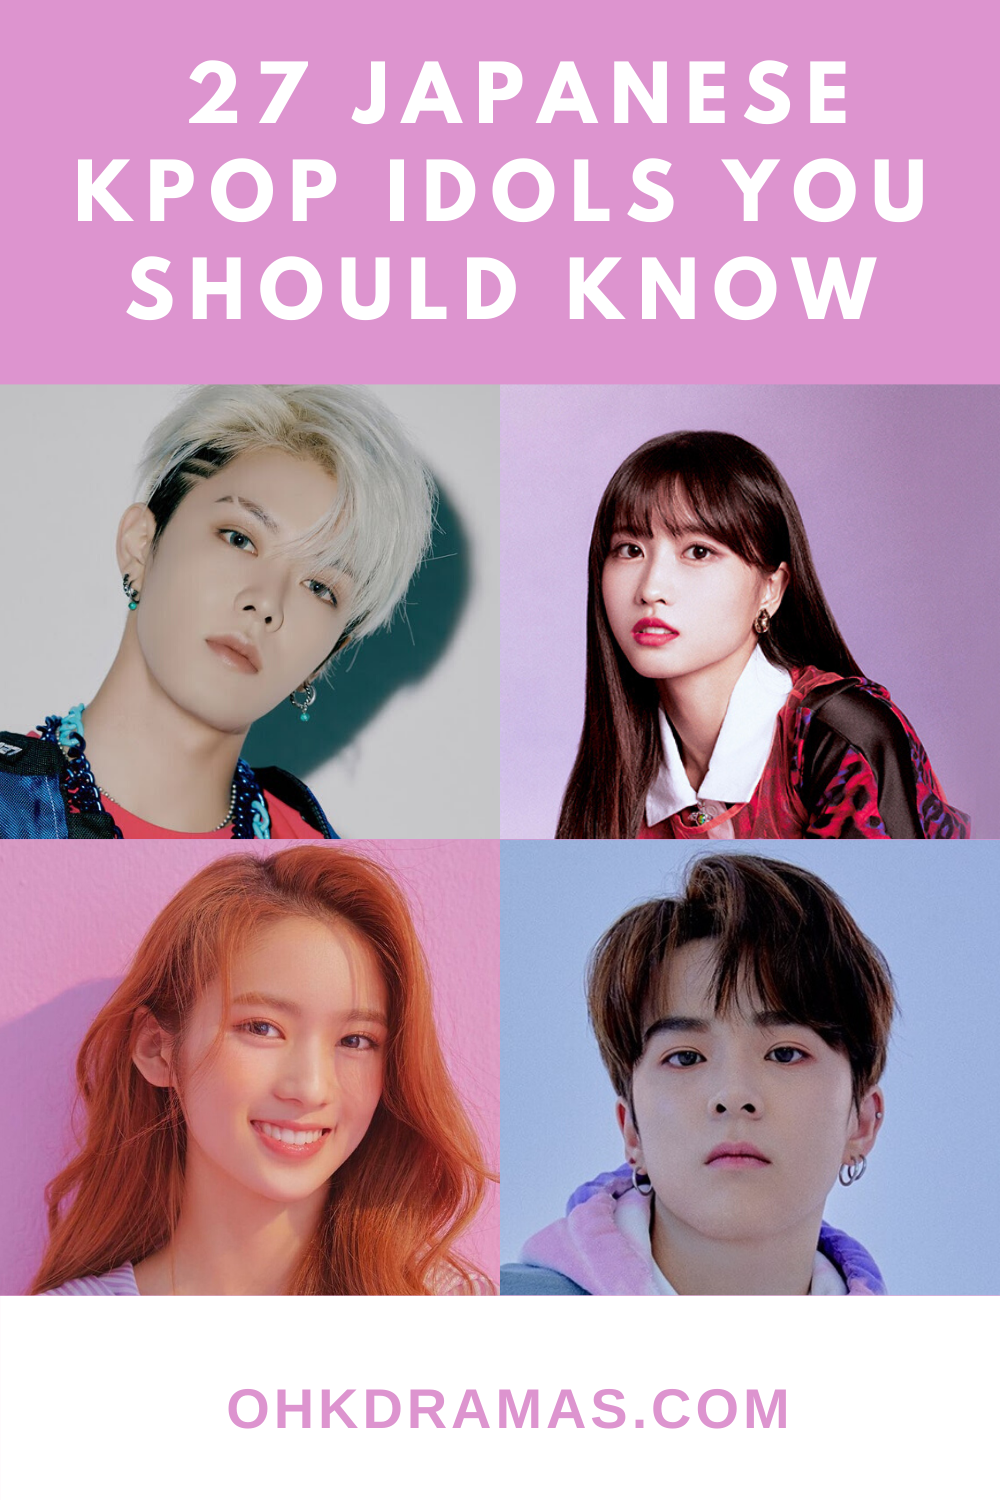 27 Japanese Kpop Idols You Should Know Oh Korean Dramas Kpop Idol Korean Pop Idol Idol